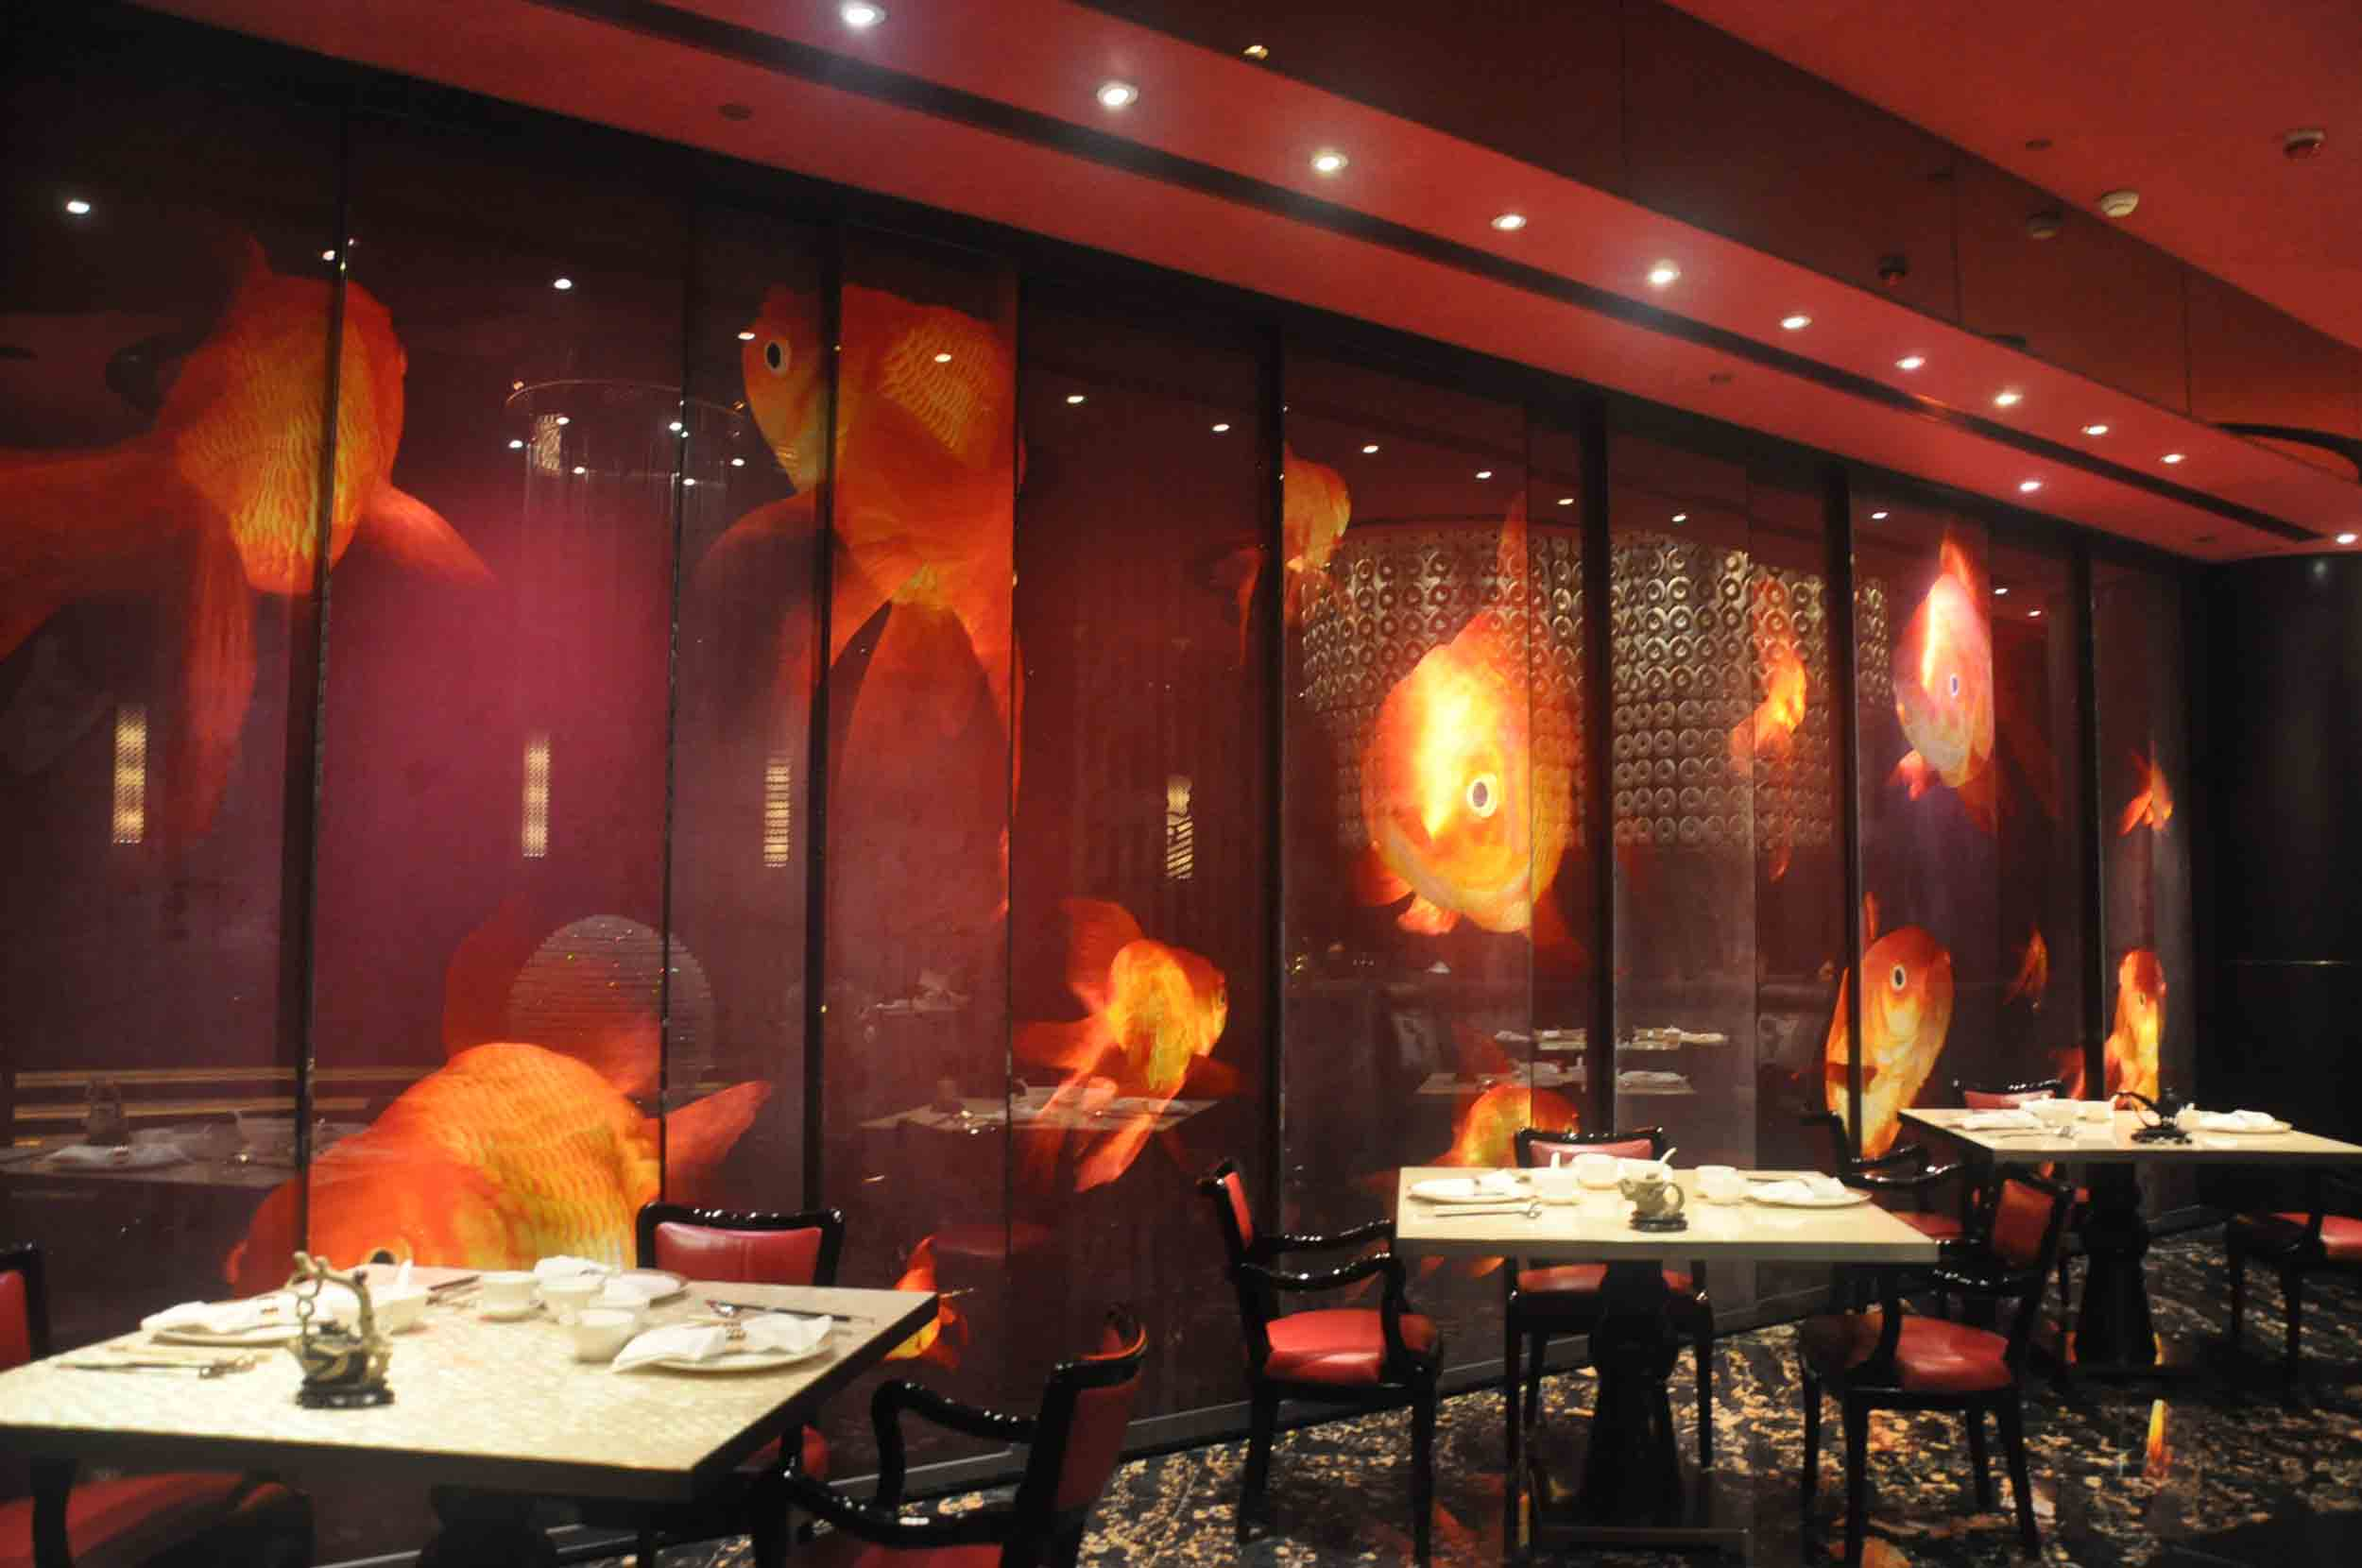 Best Macau Restaurants: 8 Macau